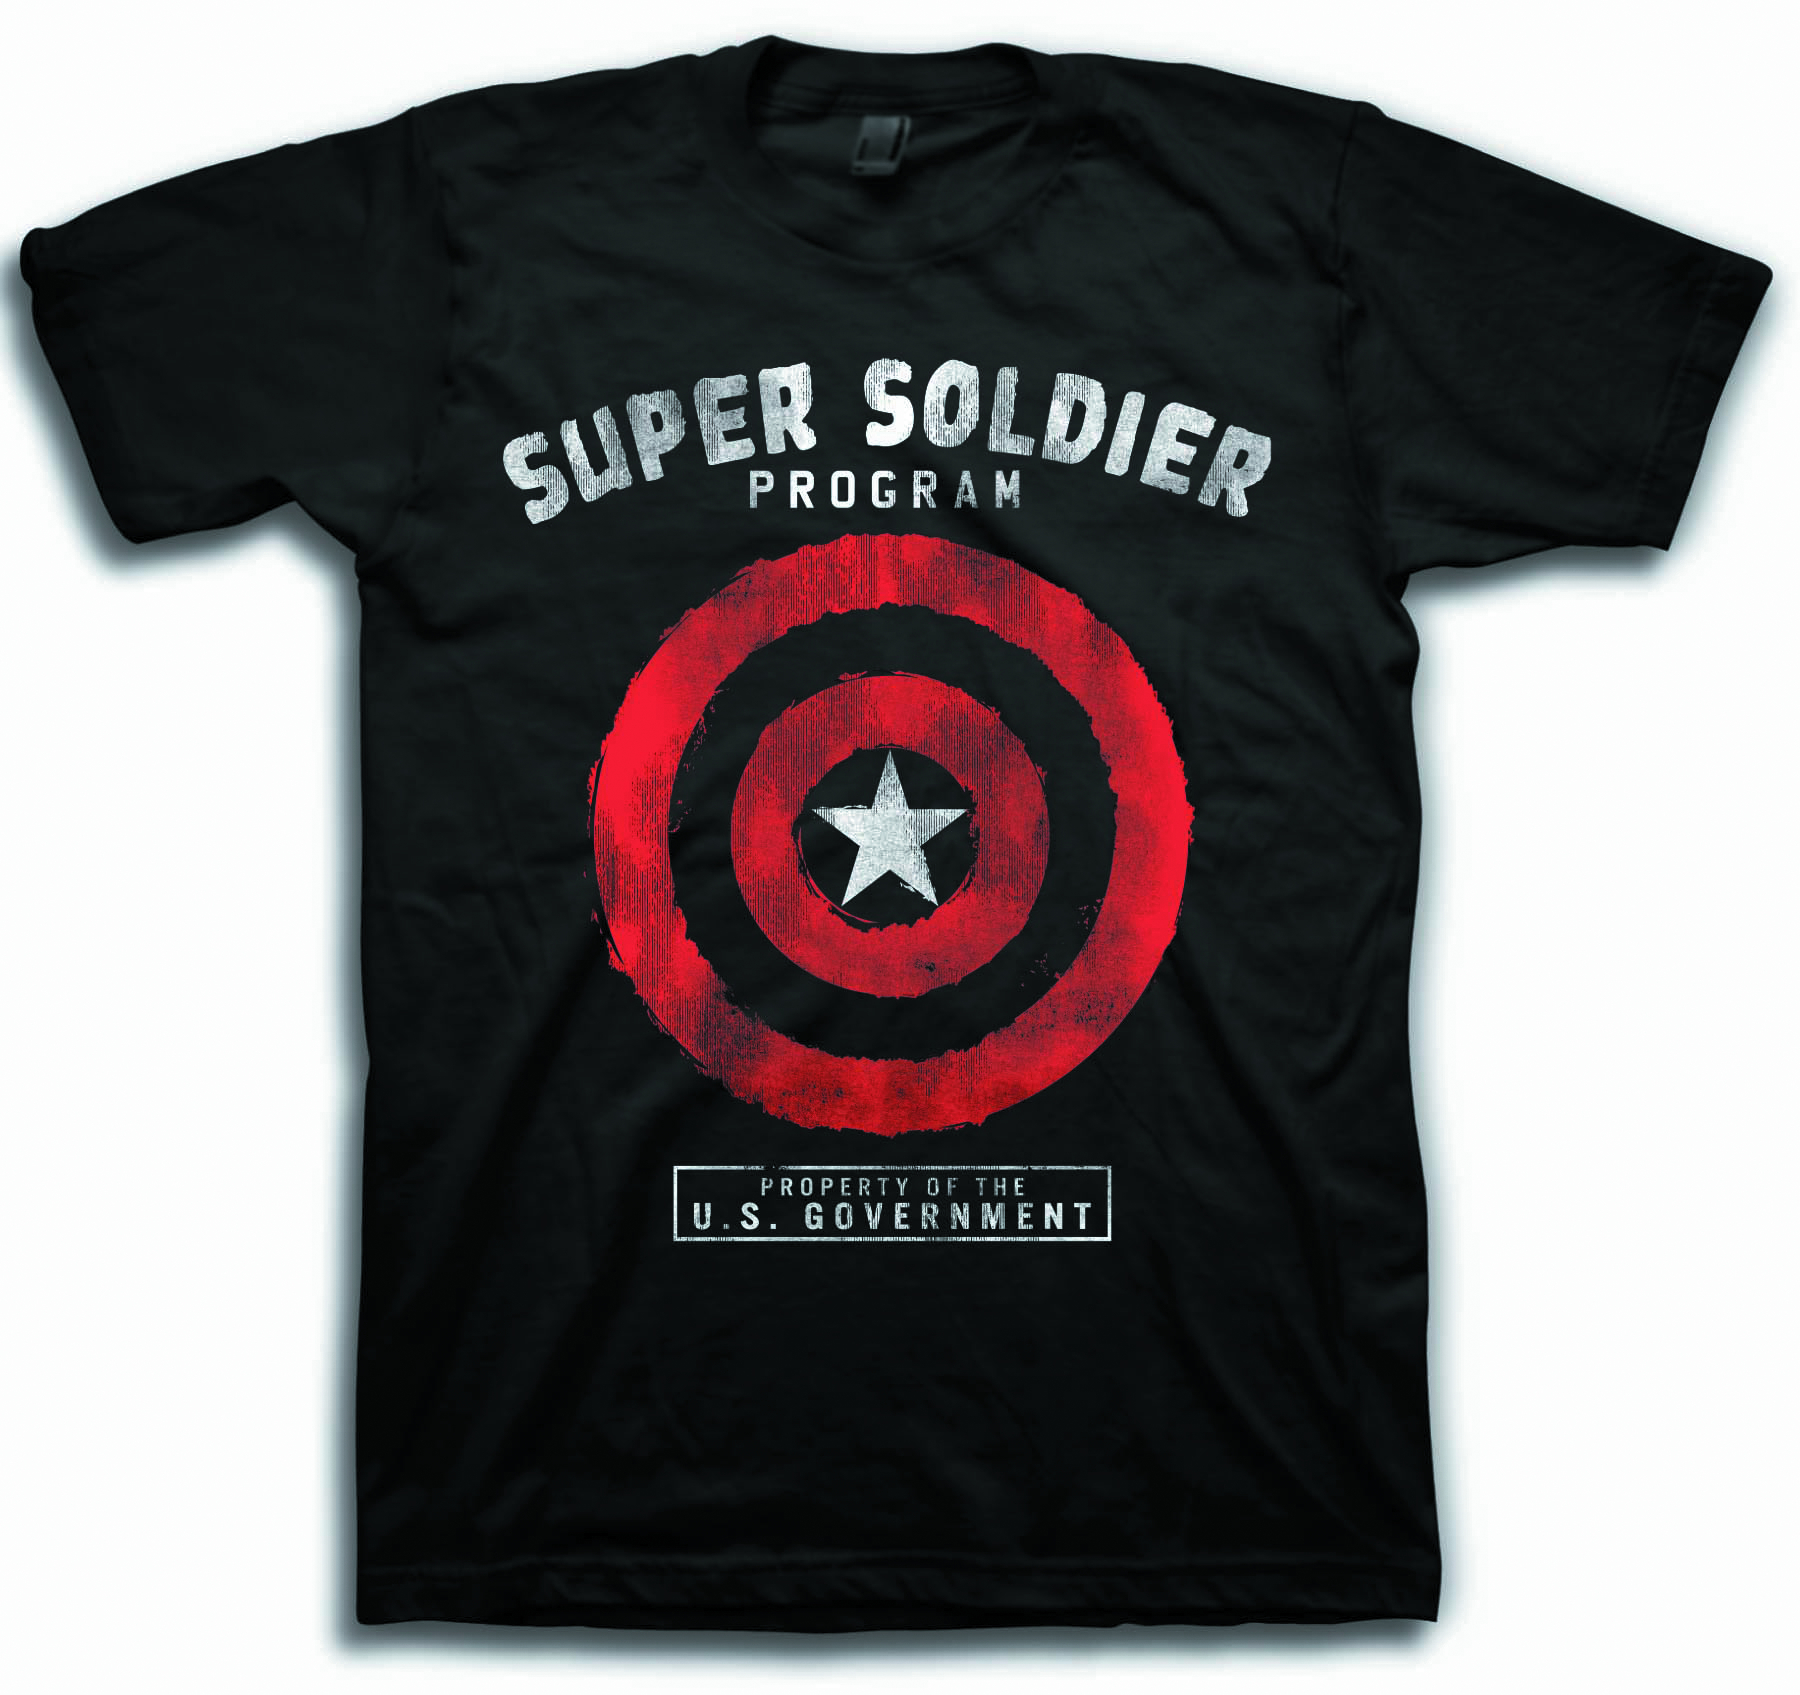 SUPER SOLDIER PROGRAM BLK T/S XXL